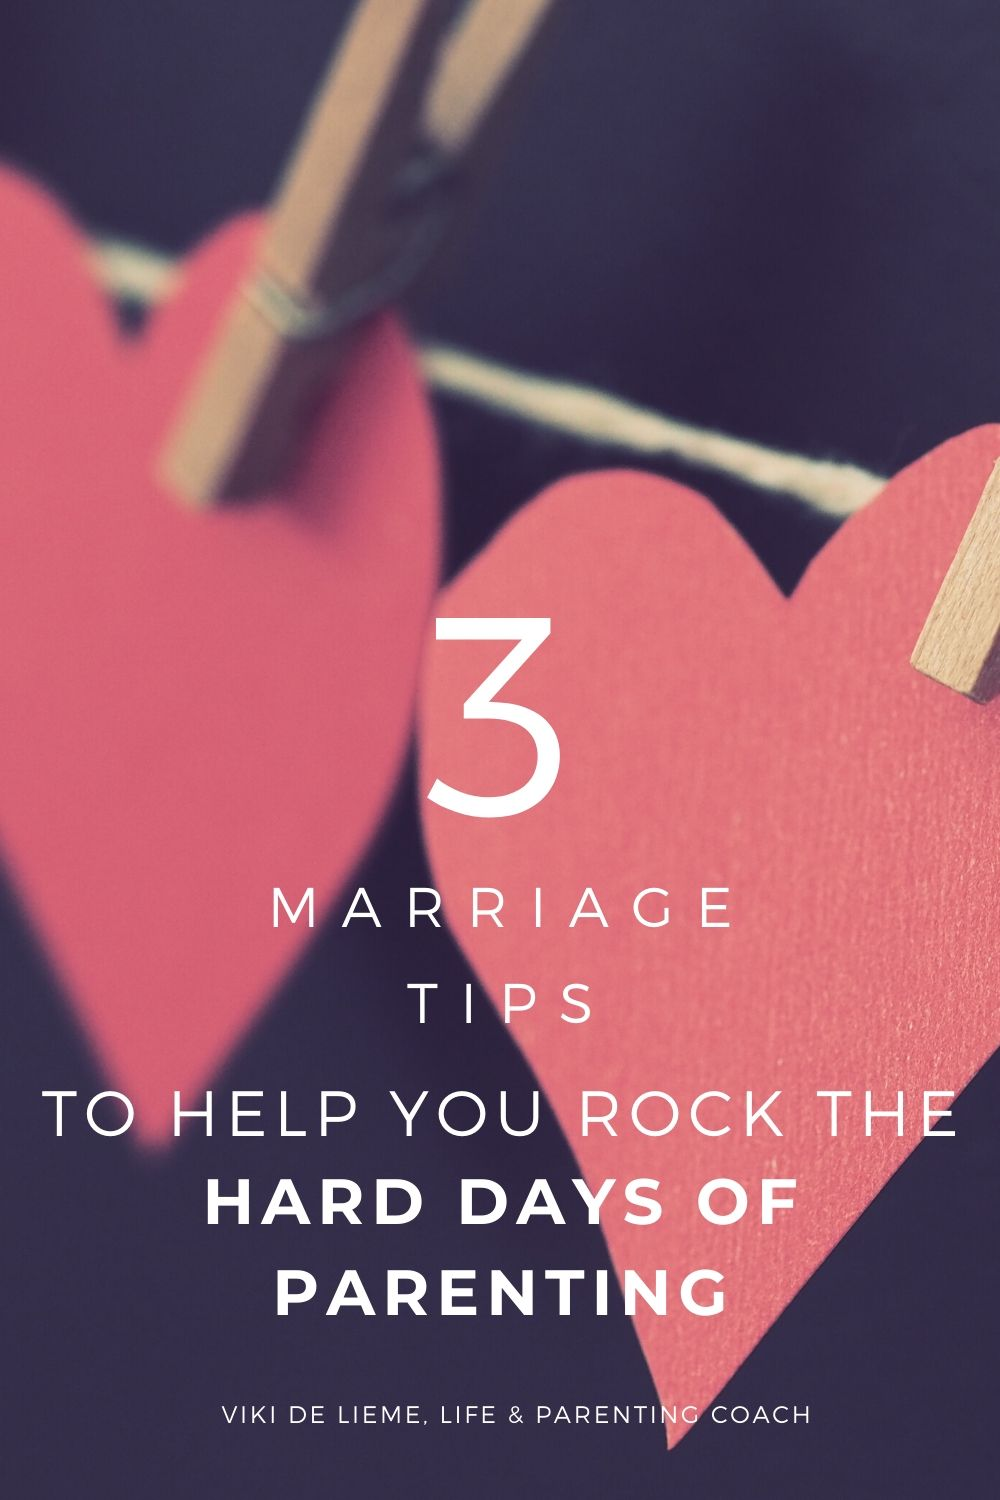 Beat the disconnection, the fights, the power struggles, and the loneliness with these three marriage tips! Learn how to speak what's on your mind and share your feelings with your loved one so that they's listen to you, see you, and cooperate with you for everyone's benefit. #marriage #relationshipgoals #parenting #parentinghelp #selfhelp